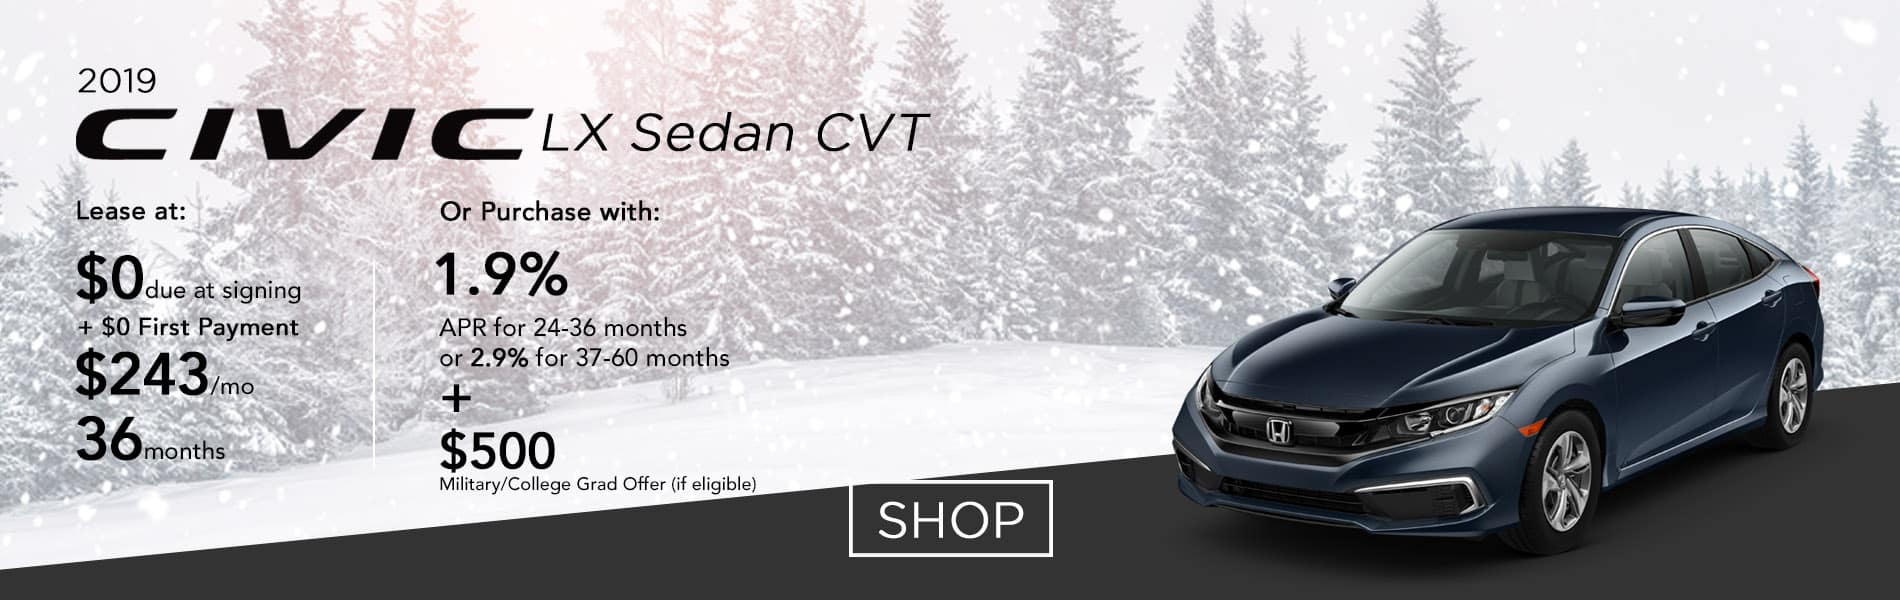 Lease a 2019 Civic LX Sedan CVT for $243 per month or purchase with 1.9% APR up to 36 months